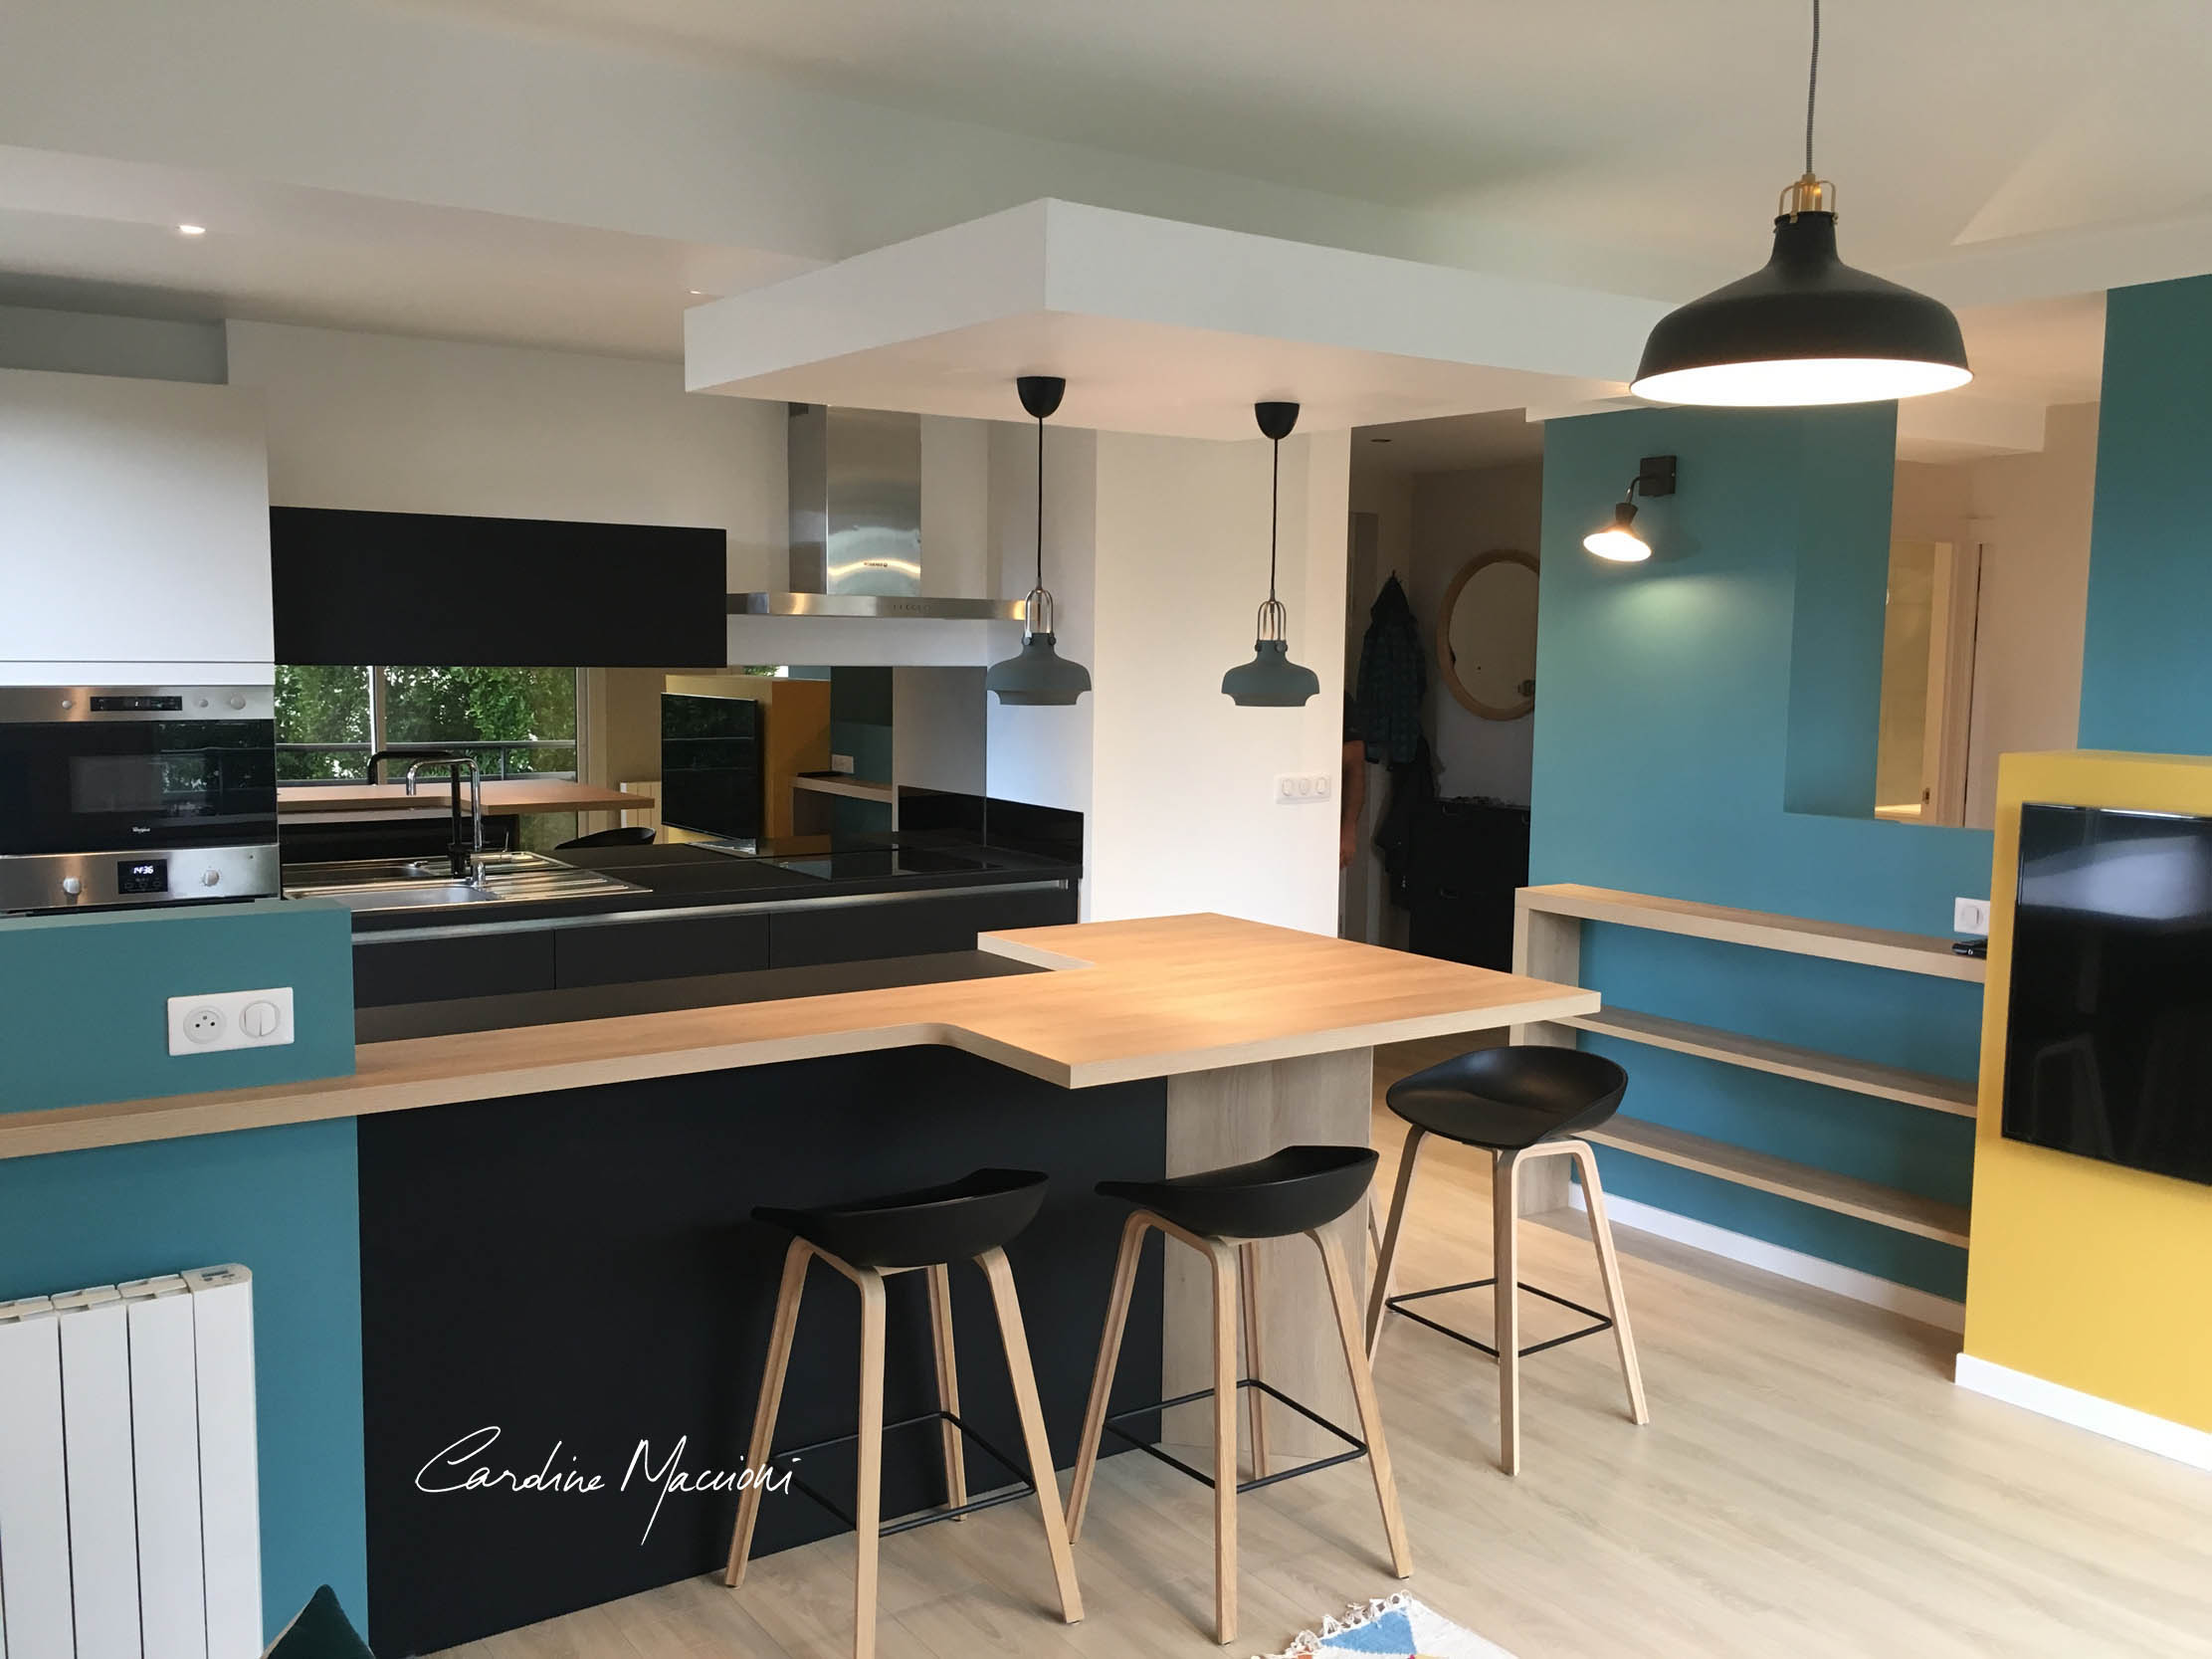 carolinemaccioni_renovation-decorationinterieur-appartement-biarritz-centre-201610-2969